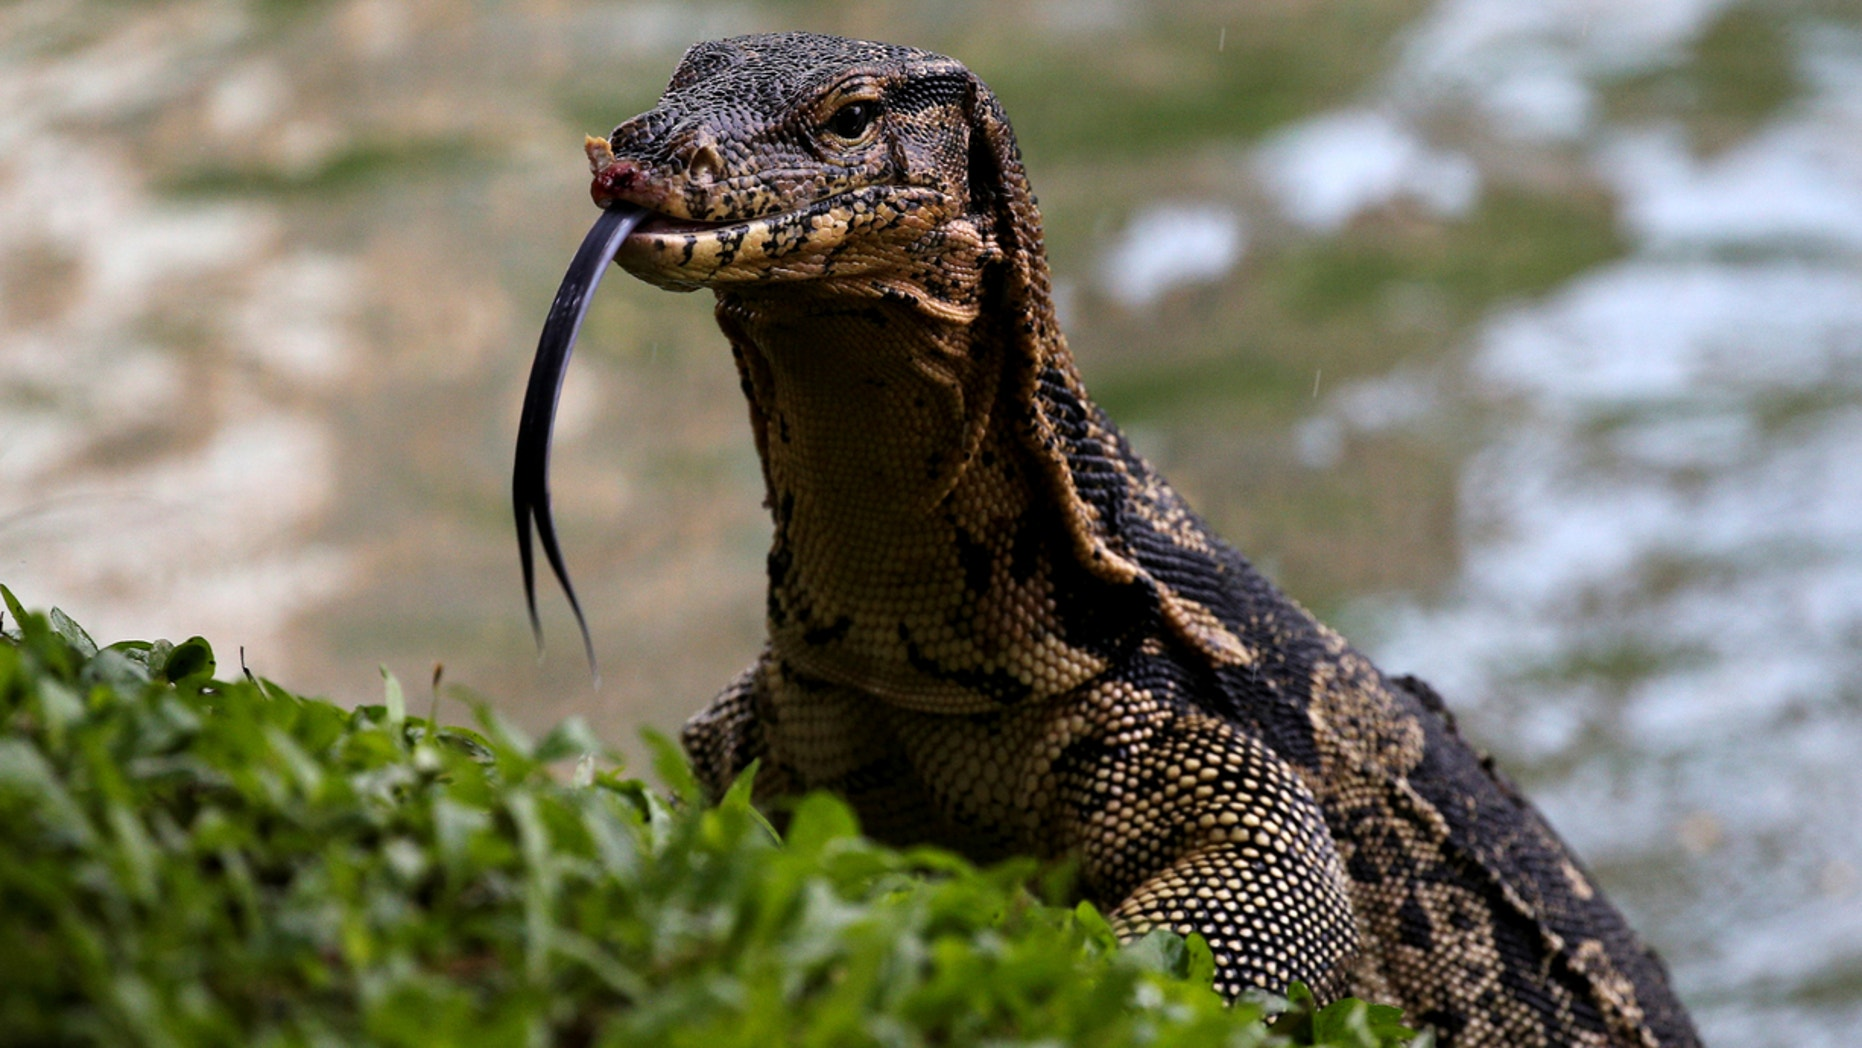 A monitor lizard is pictured at Lumpini park in Bangkok, Thailand.